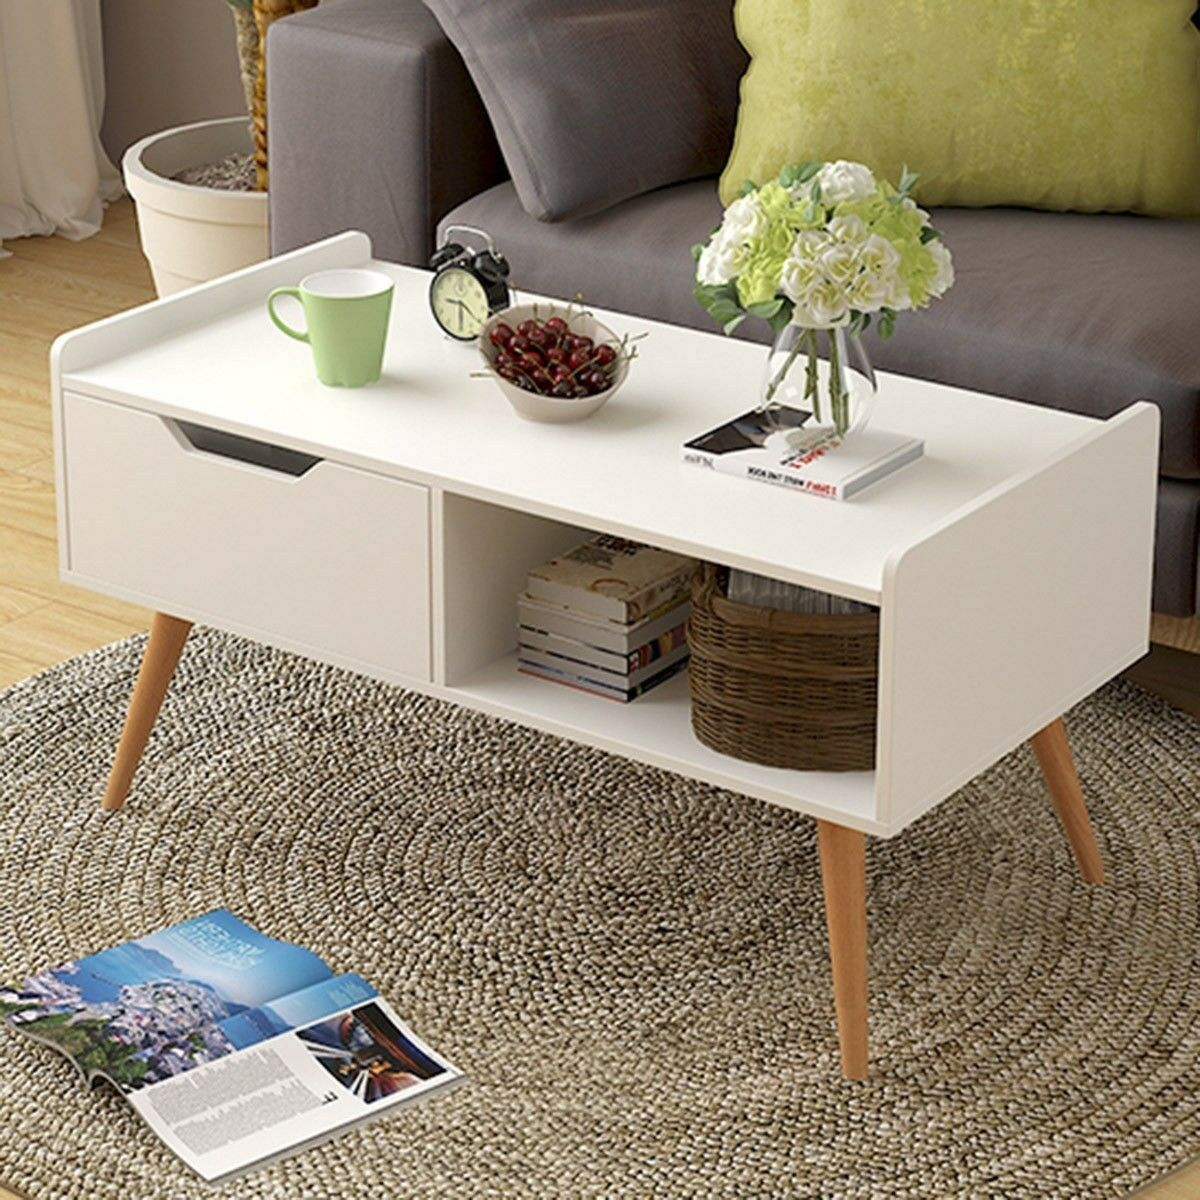 10 Best Coffee Table for Small Space - Talkdecor